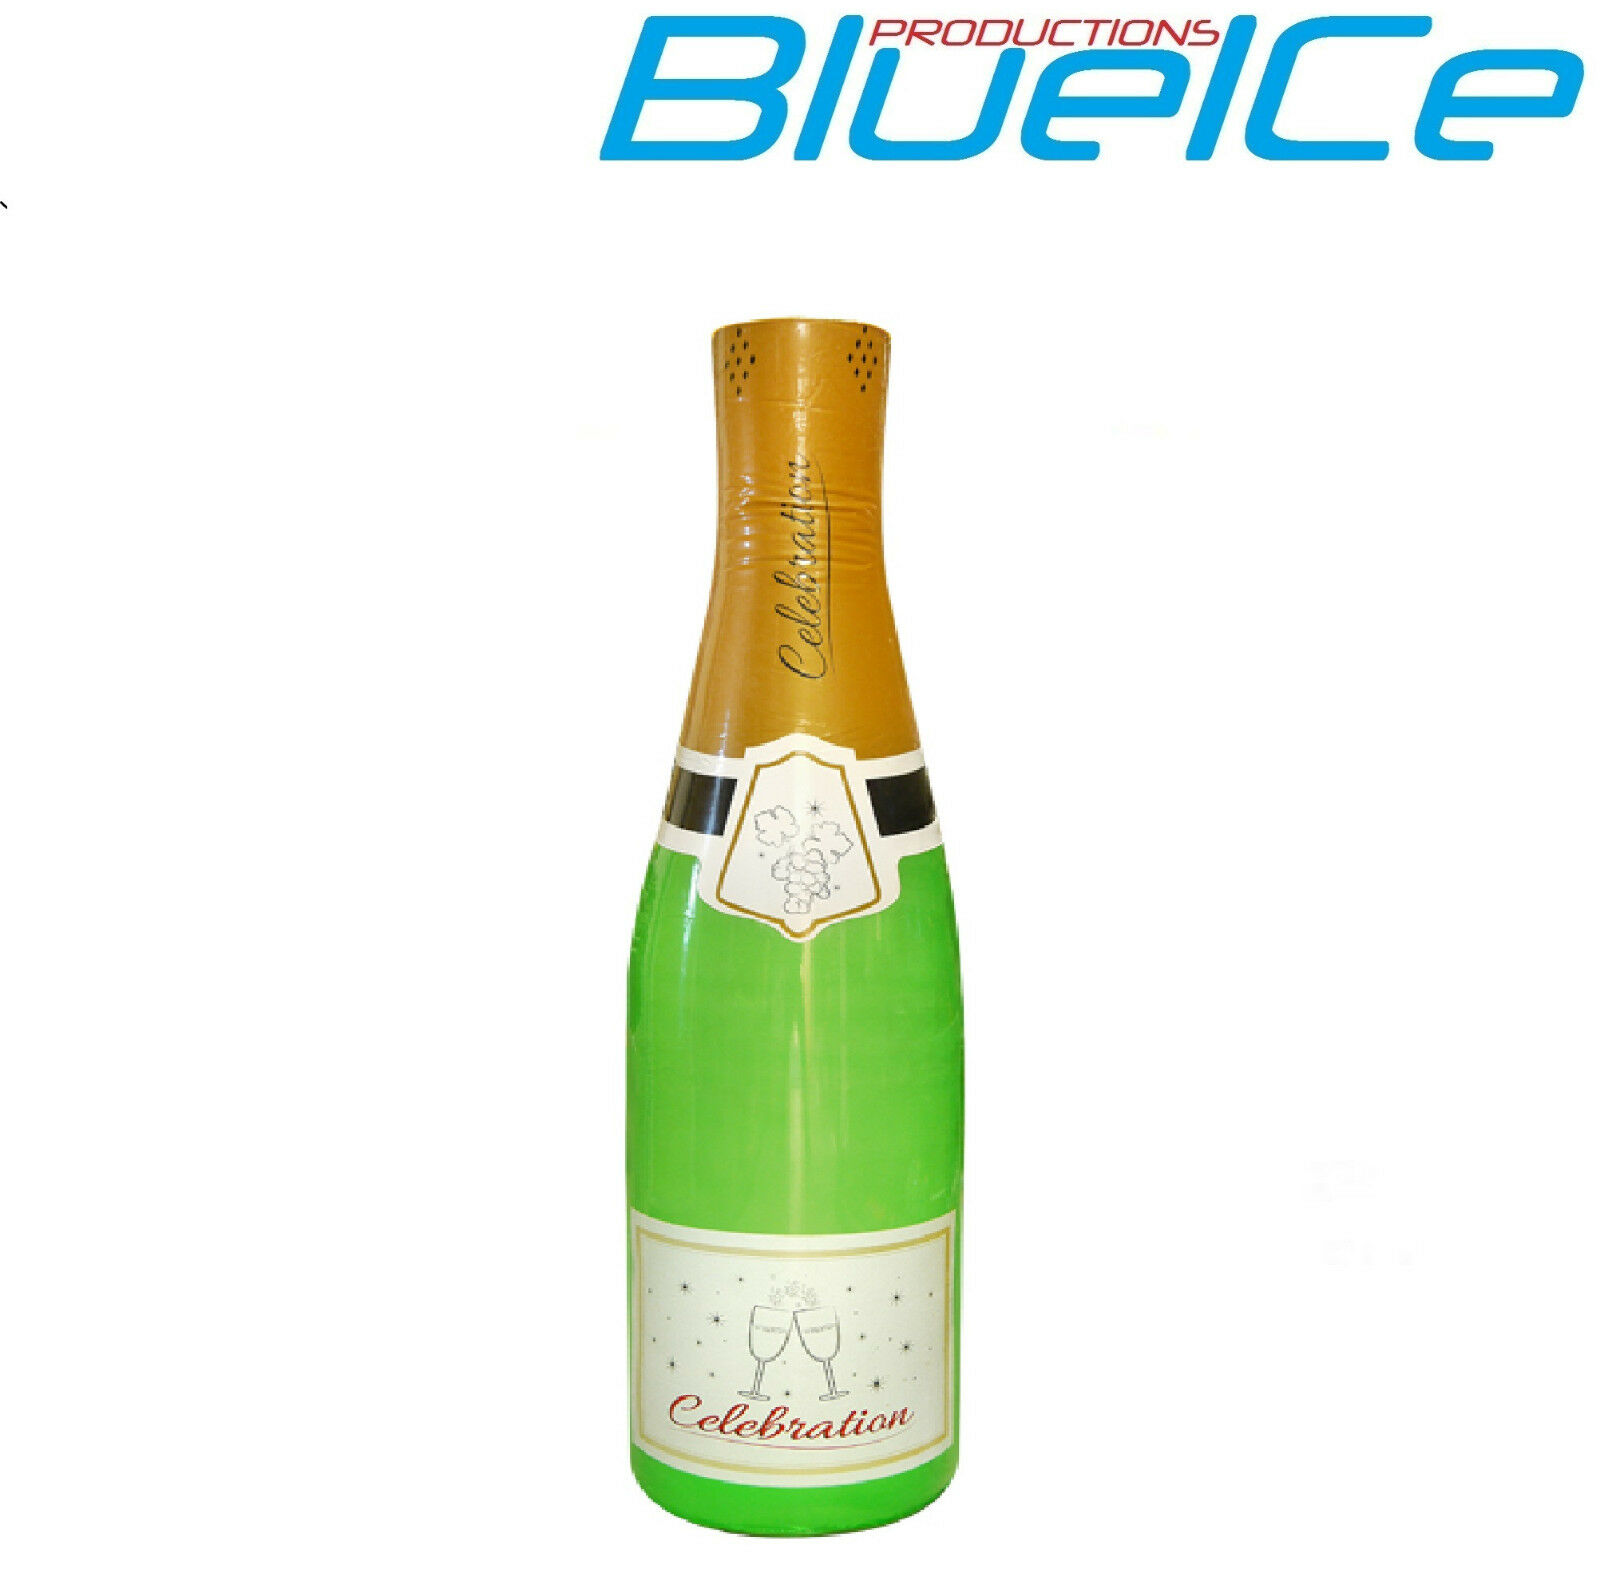 Giant 180cm Novelty Wedding Champagne Bottle Inflatable Party Decoration Uk Sell For Sale Online Ebay